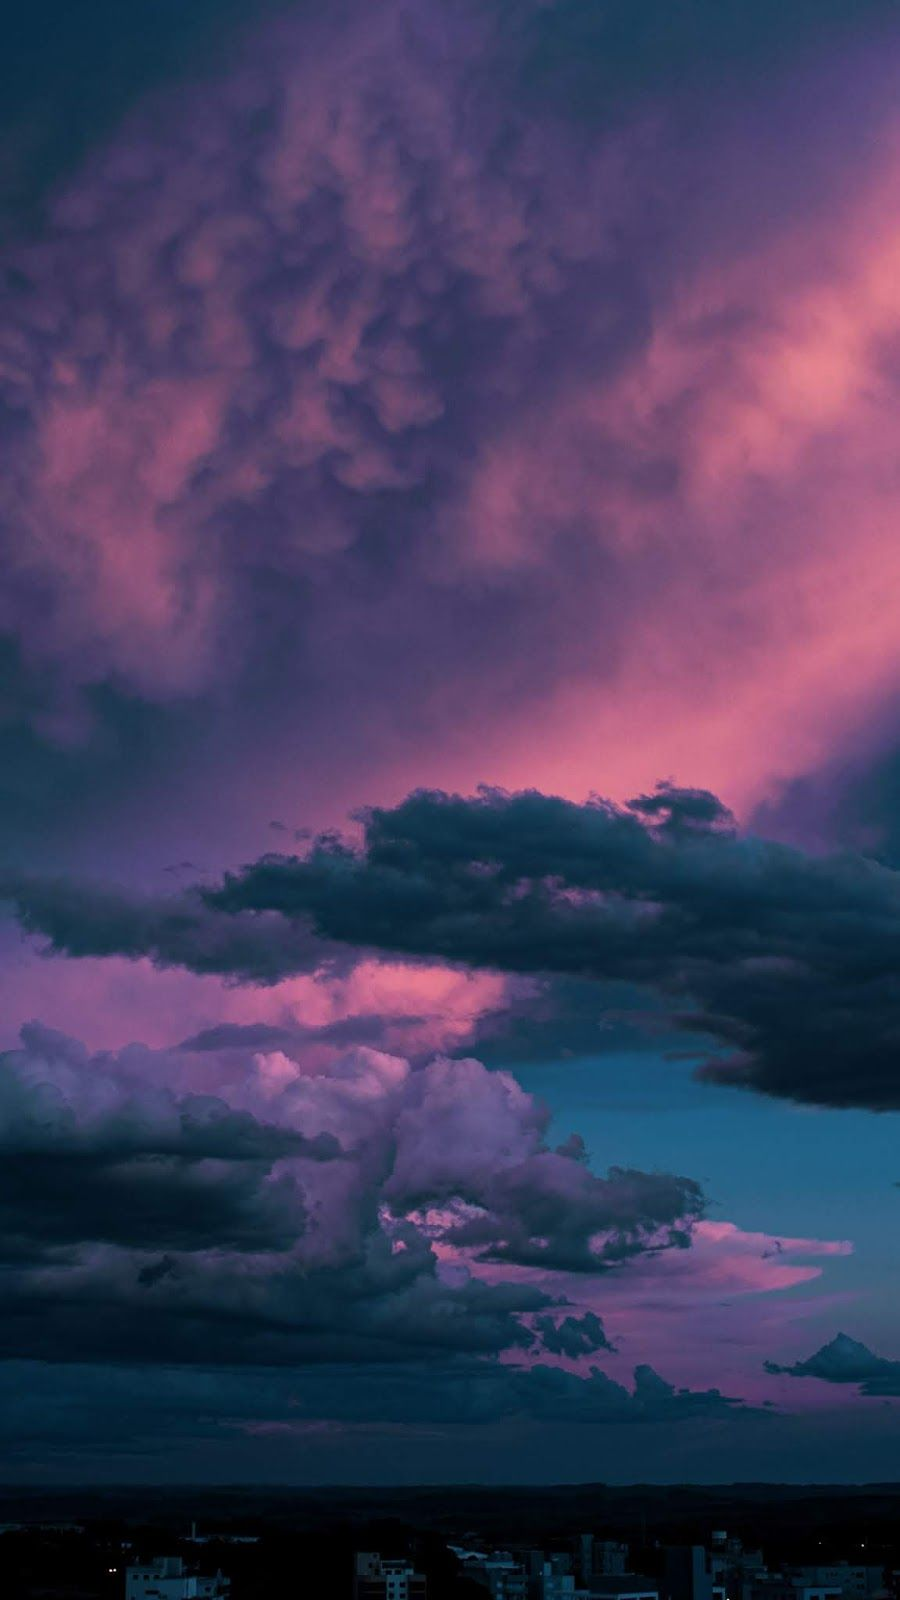 Dark Clouds In The Sky Anime Backgrounds Aesthetic Scenery Wallpaper Sky Aesthetic